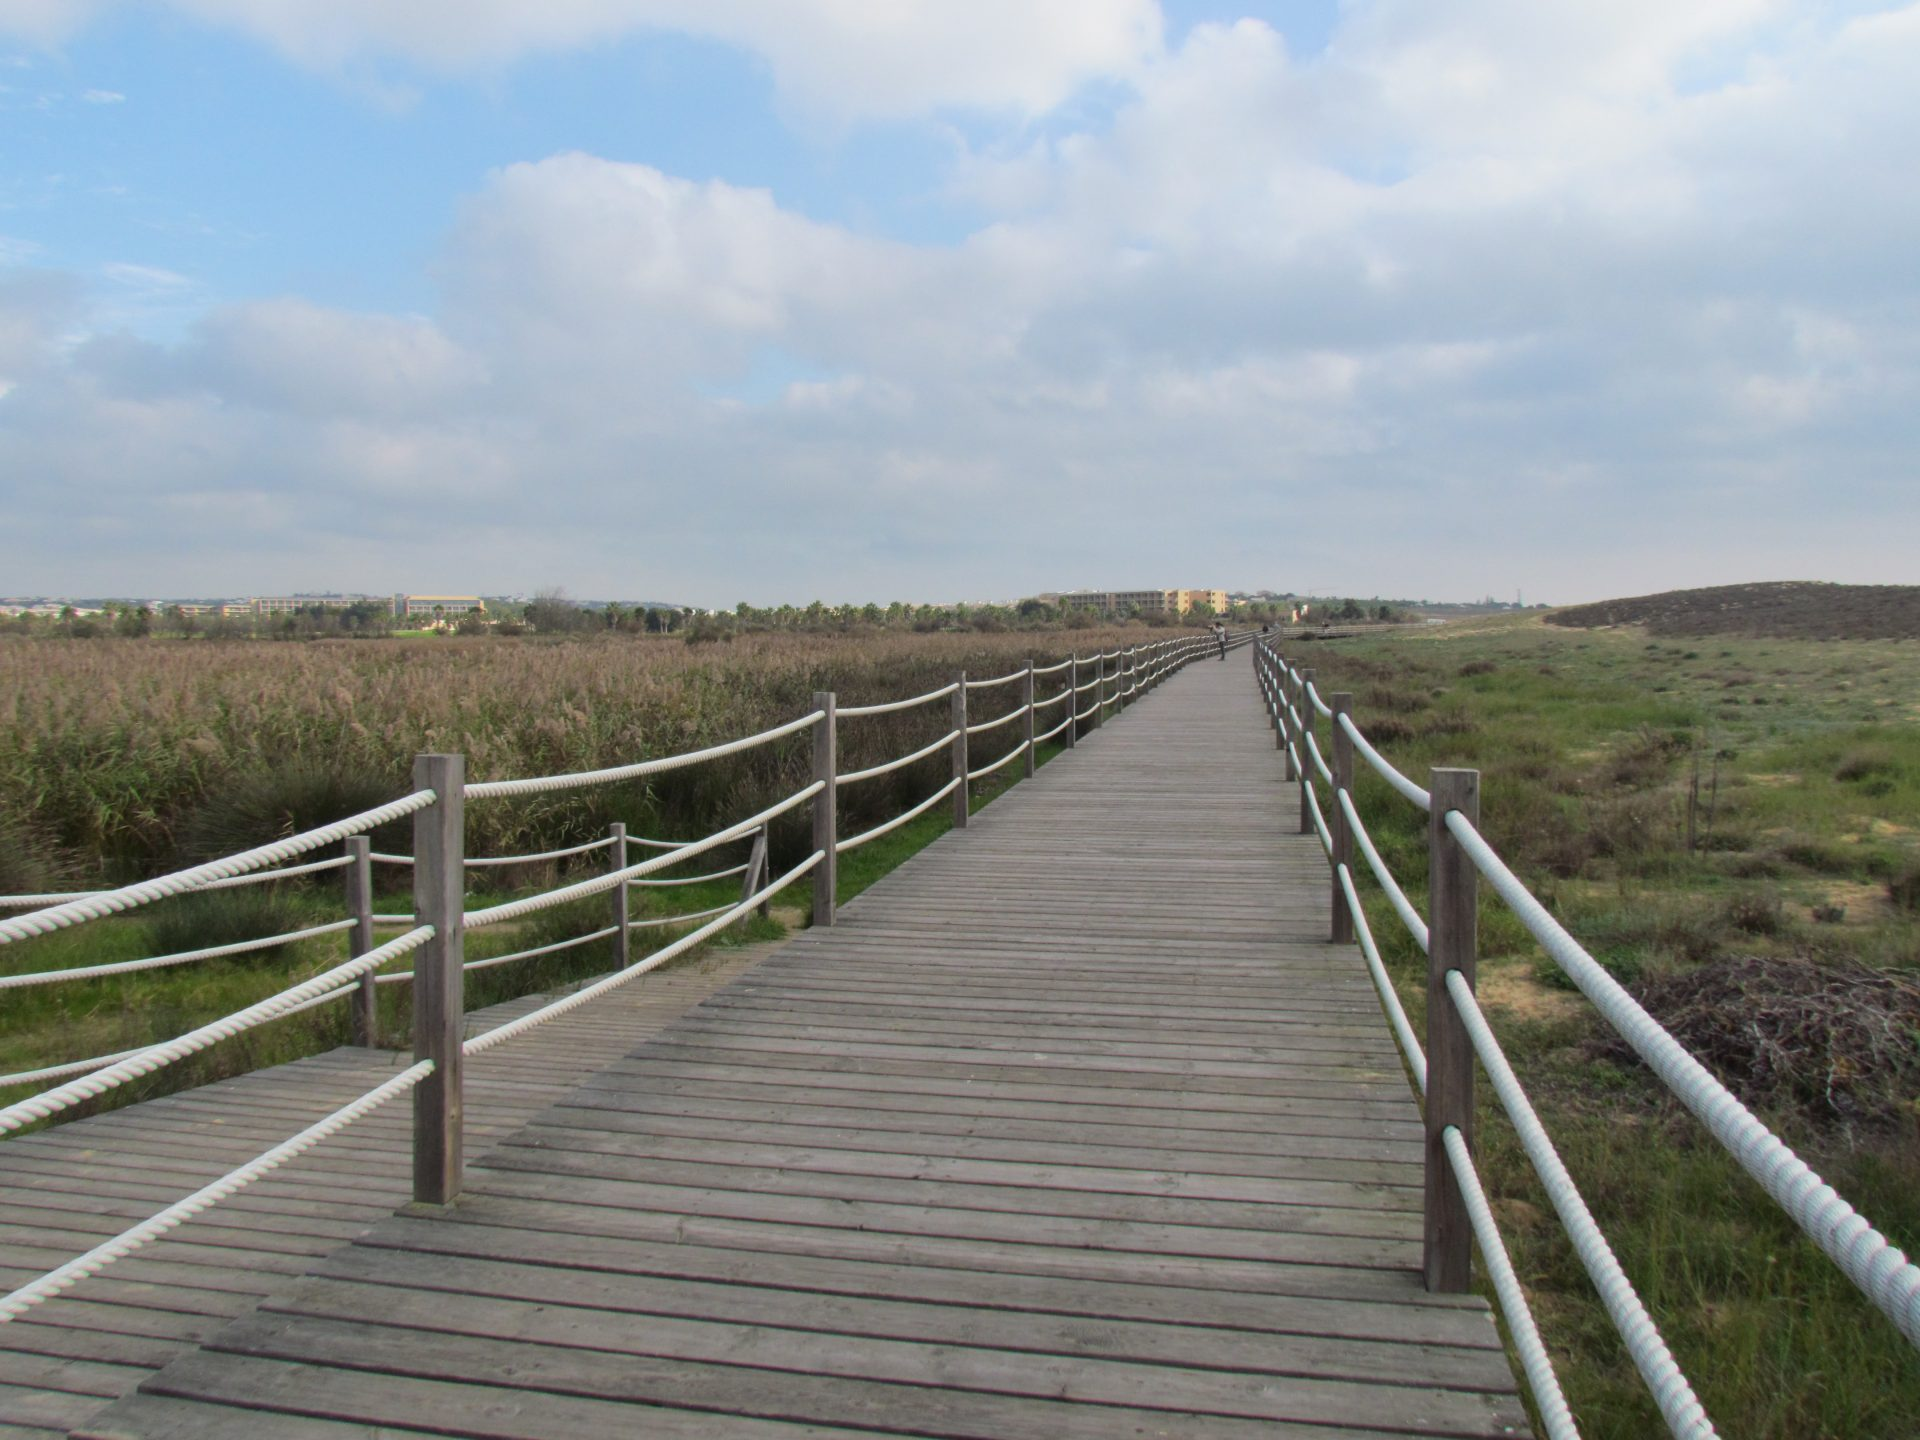 boardwalk by a lagoon